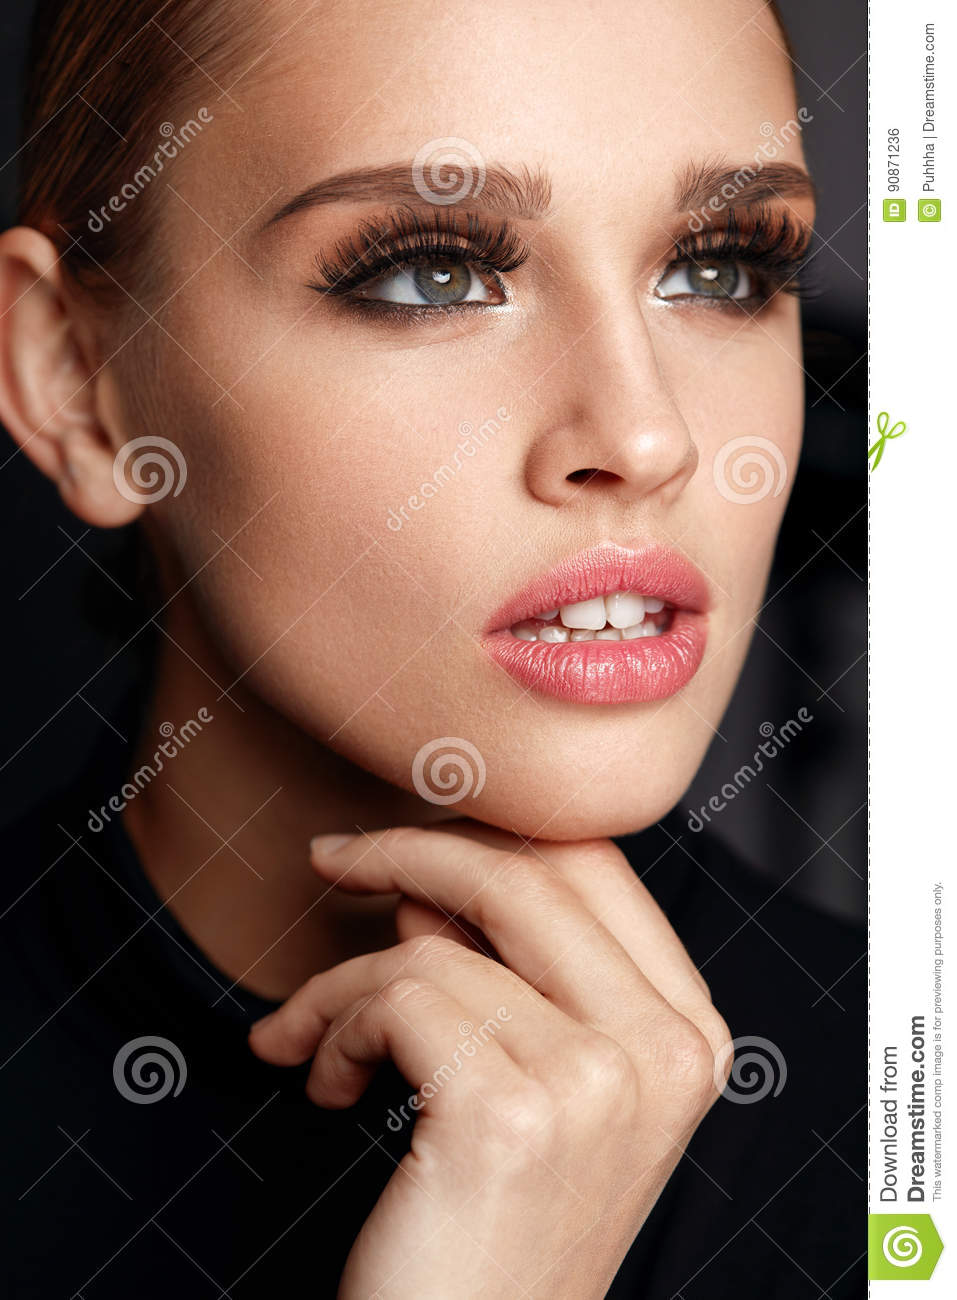 cbbdf5e3579 Beauty Woman Face. Portrait Of Beautiful Young Female With Perfect Facial  Makeup, Soft Fresh Healthy Skin And Thick Long Black Eyelashes. Glamorous  Girl On ...